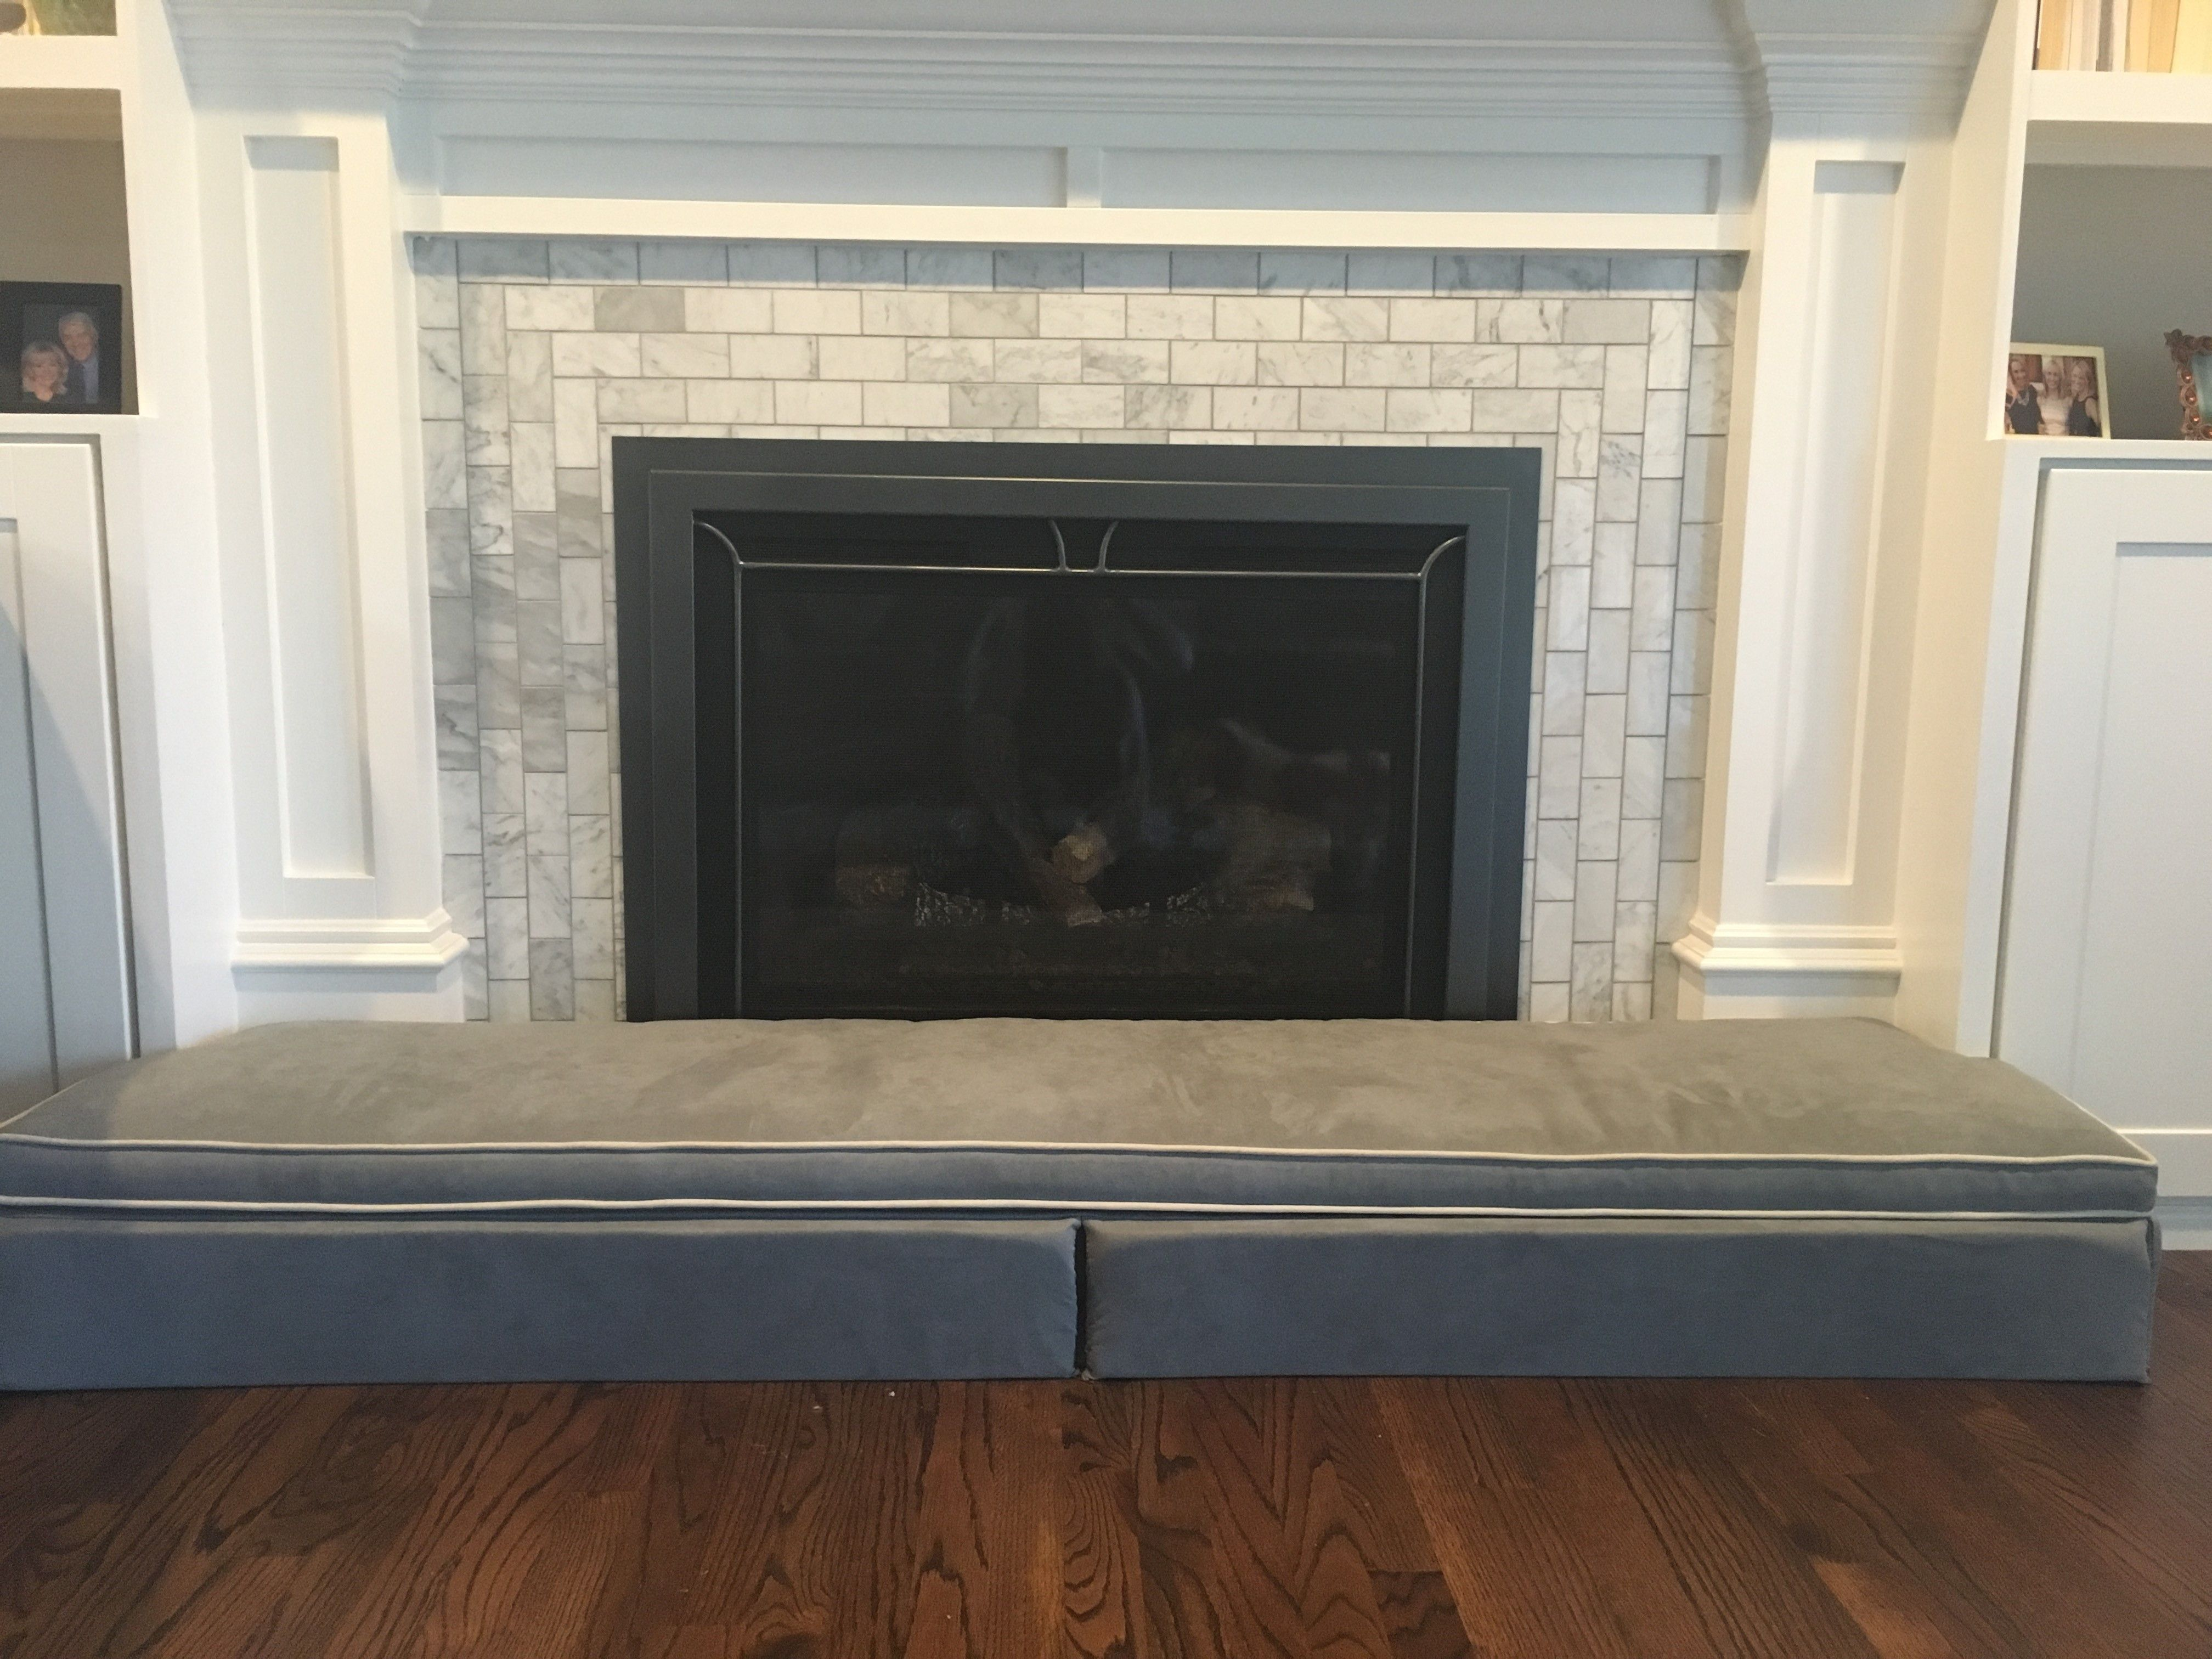 The Custom Hearthsoft By Jamboo Creations Protects Baby From Injuries And Adds Beautiful Seating In Any De Comfortable Seating Fireplace Hearth Baby Protection